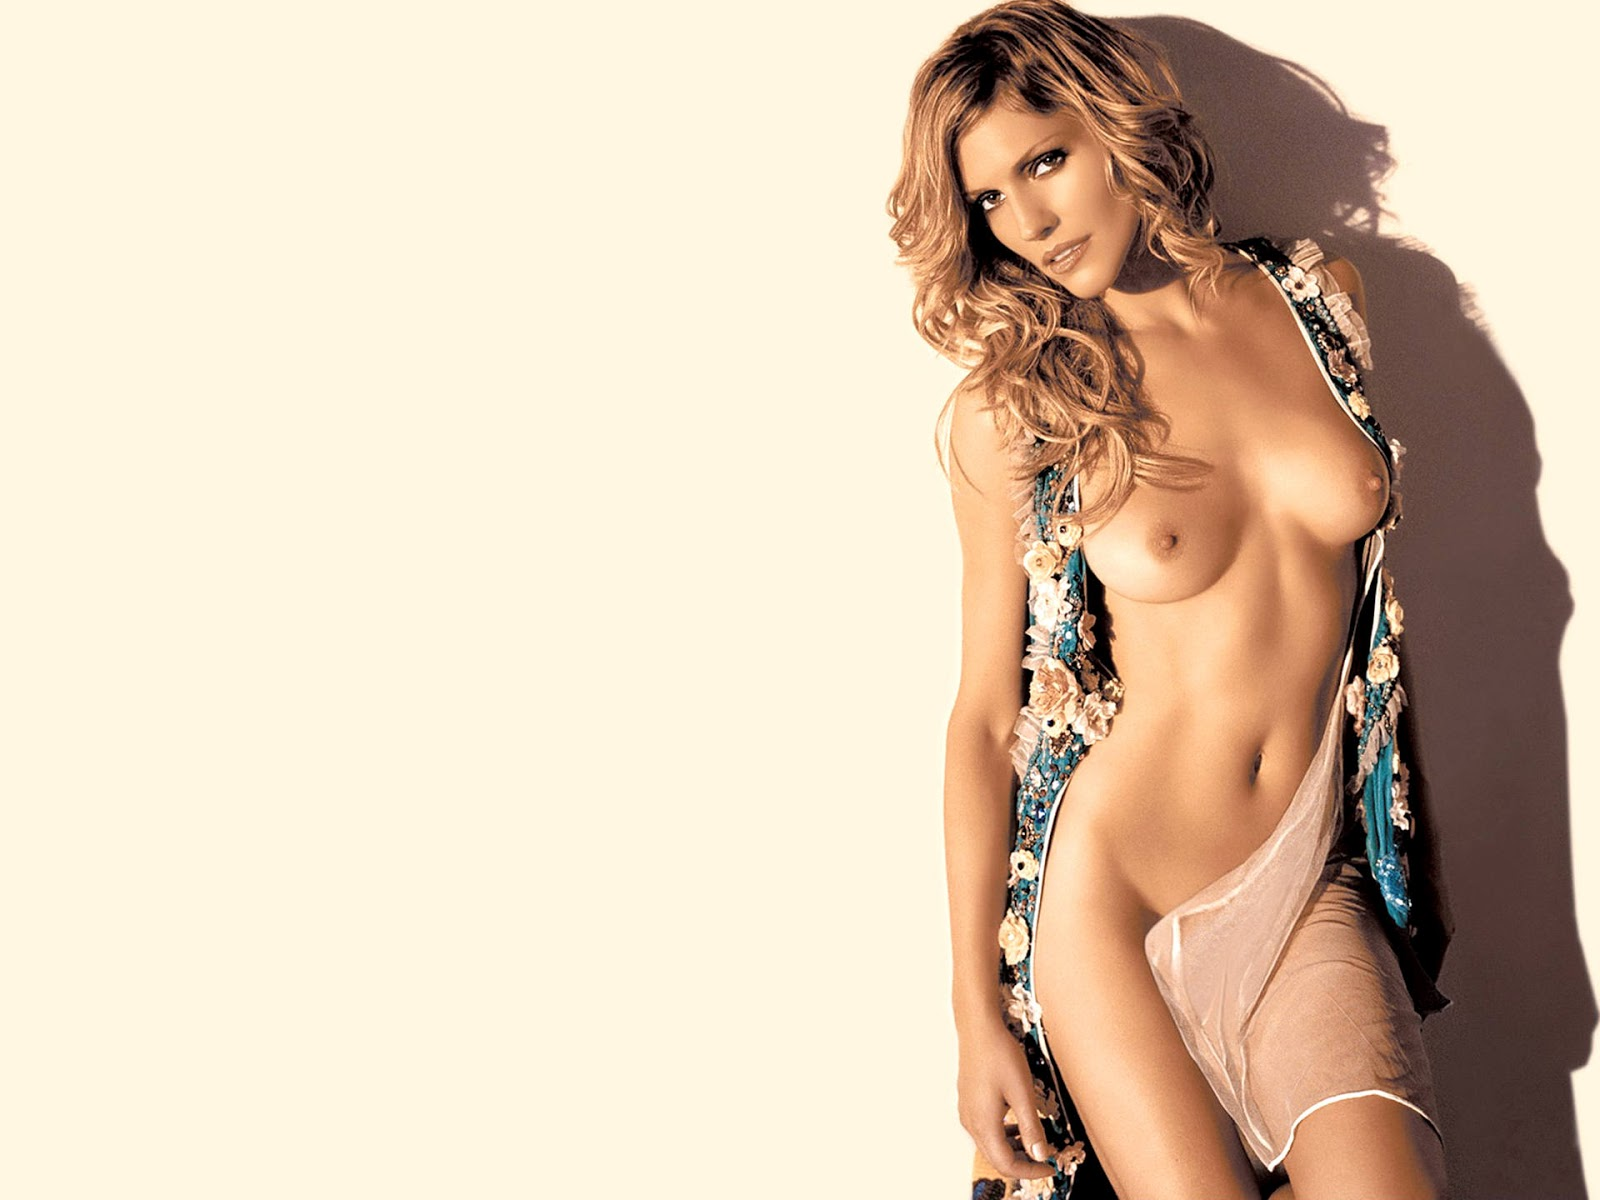 Tricia Helfer Sexy Nude Shoot For Fashion Magazine